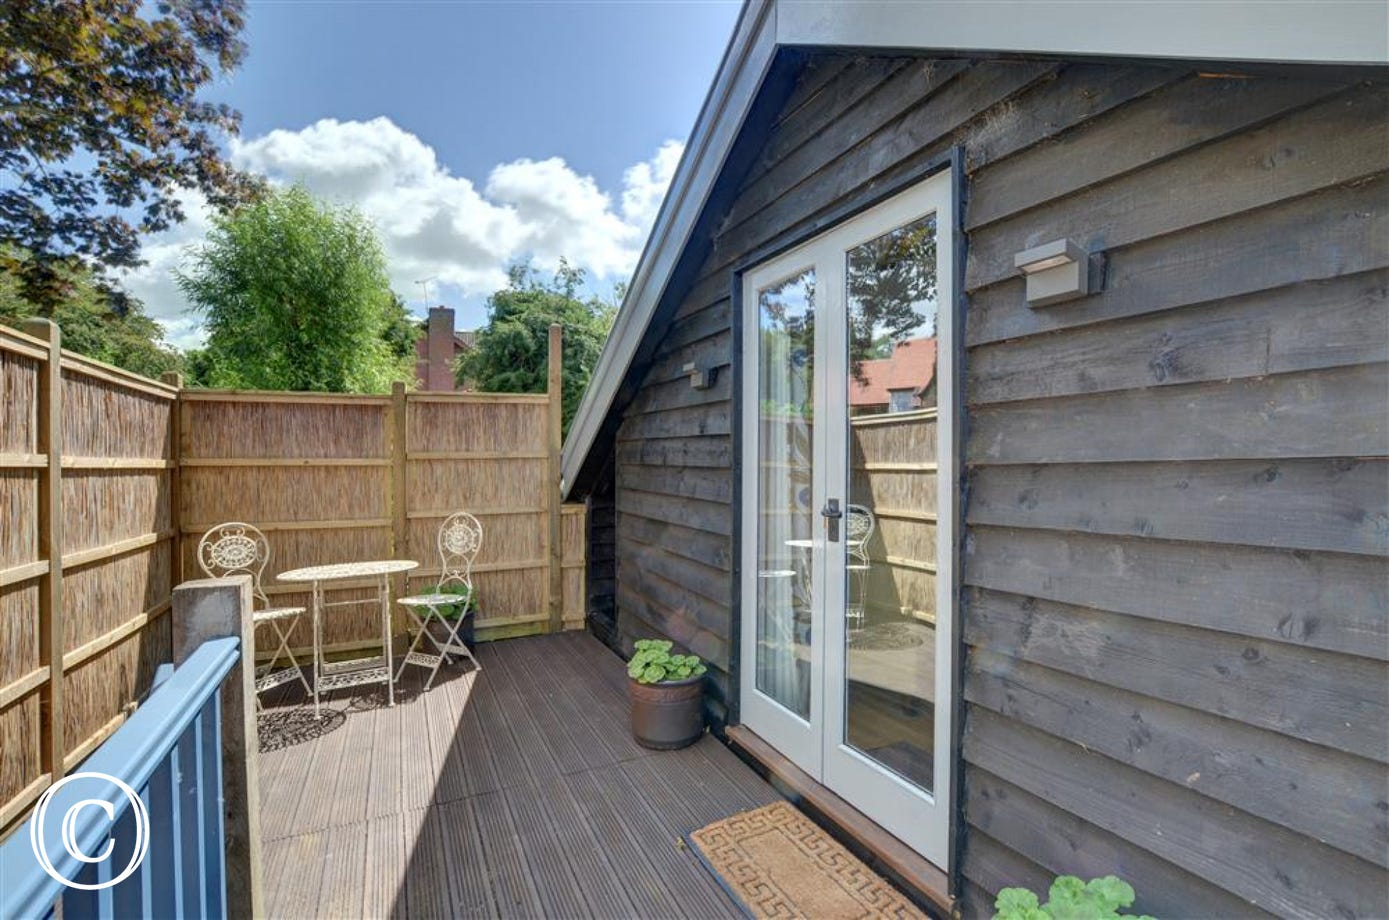 Enjoy the decked area to the front of the property for some alfresco dining or enjoying the sun.